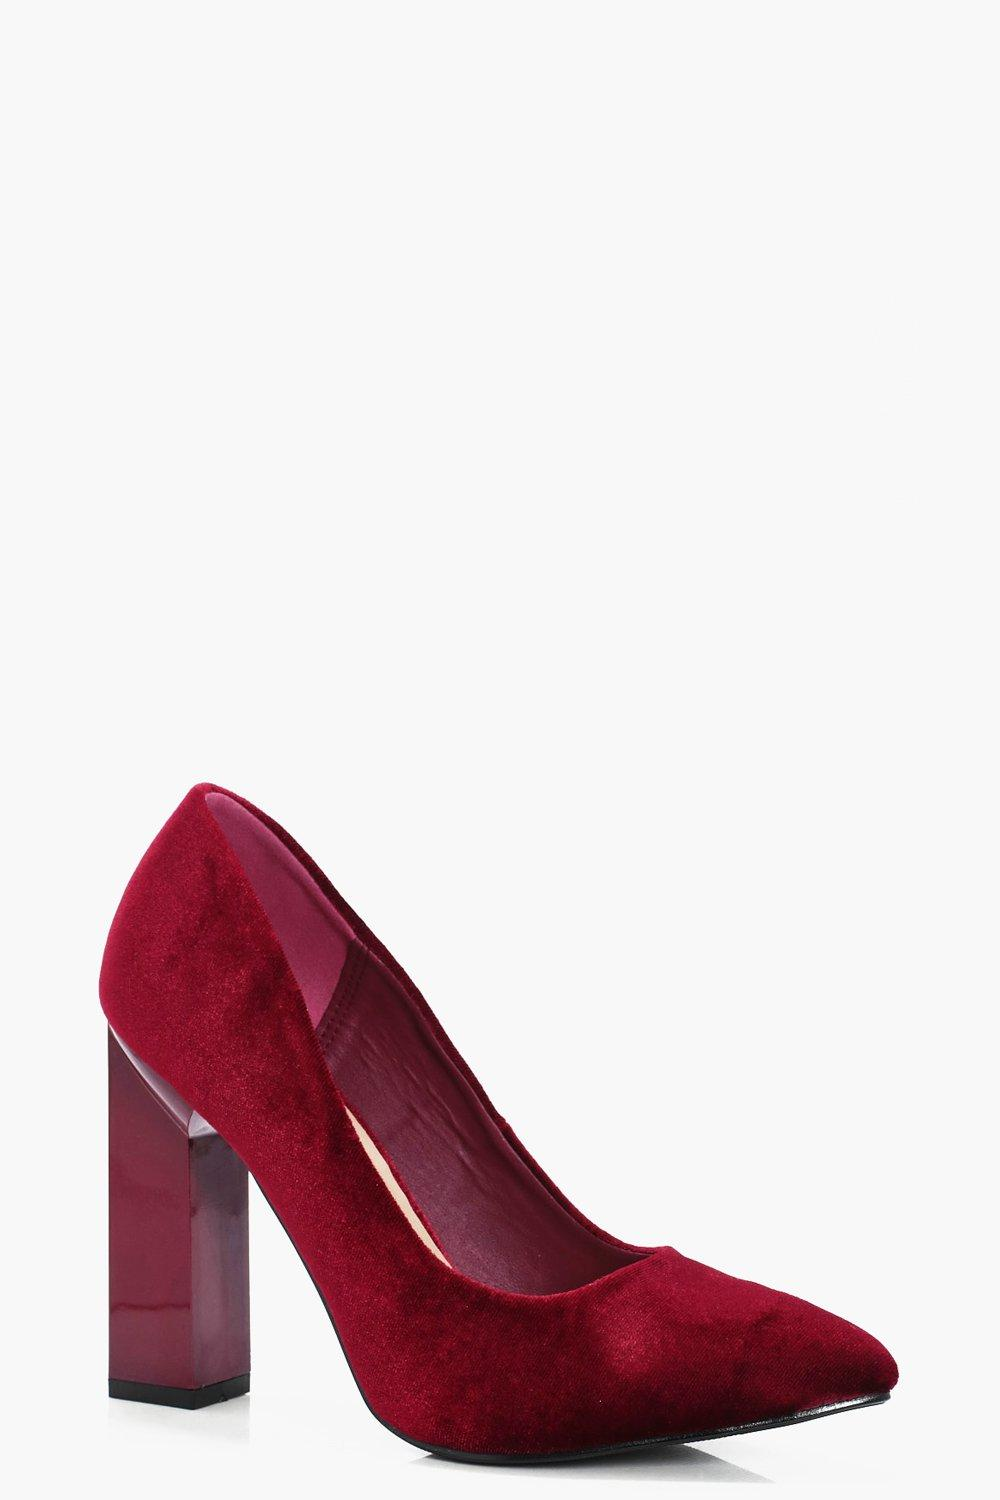 065eb0eb3b8 Pointed Toe Block Heel Court Shoes. Hover to zoom